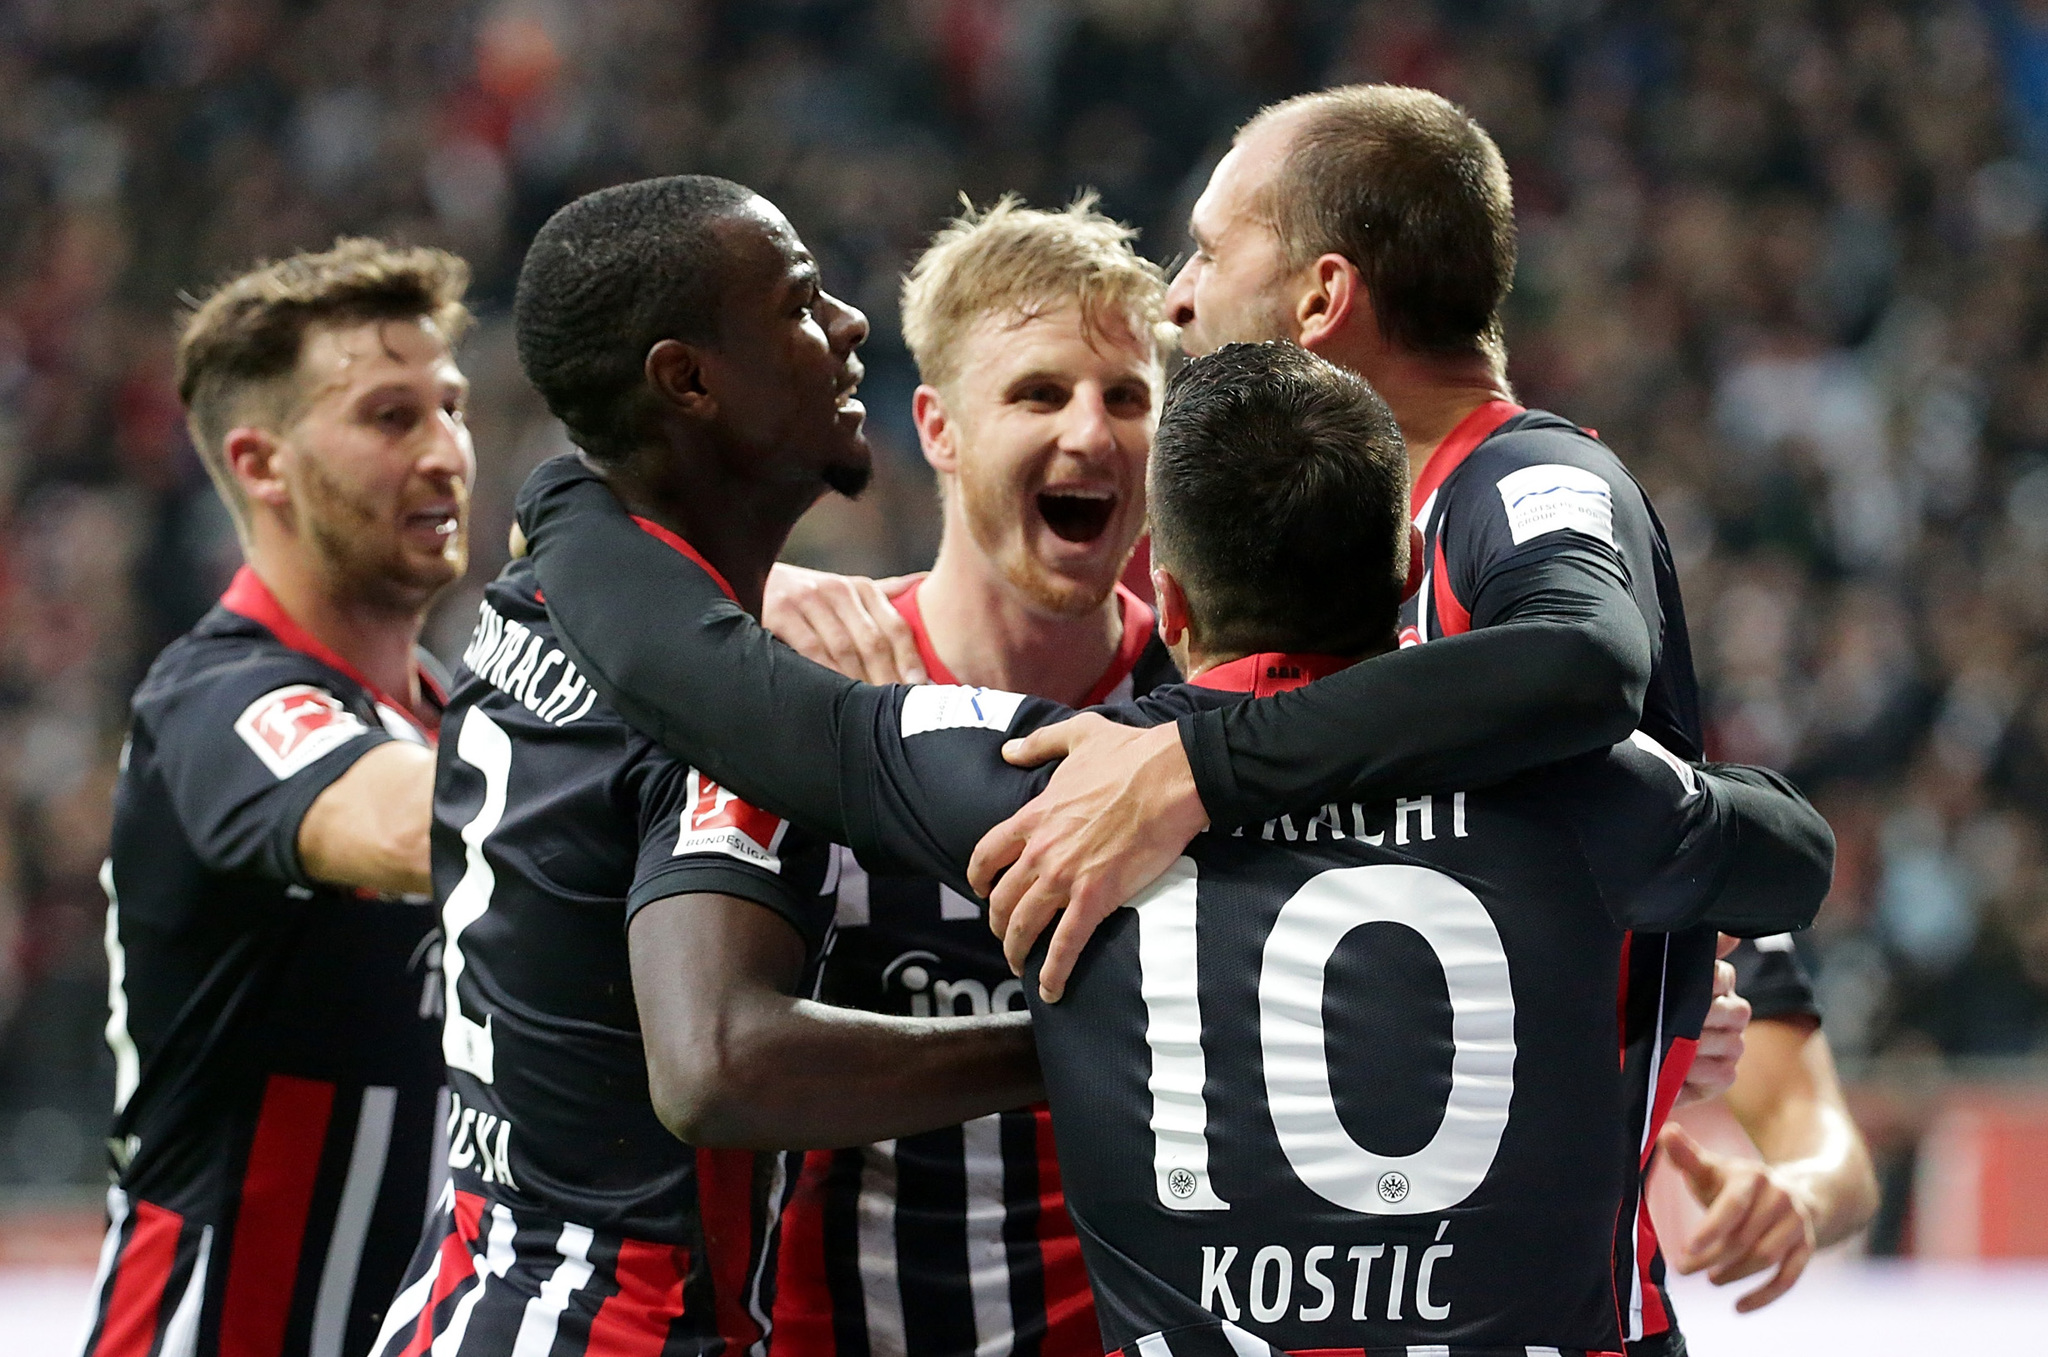 Frankfurts German defender Martin Hinteregger (L) celebrates after scoring the 4-1 during the German first division Bundesliga football match between Eintracht Frankfurt and FC <HIT>Bayern</HIT> Munich on November 2, 2019 in Frankfurt am Main, western Germany; (L-R) Frankfurts Argentinian defender David Abraham, Frankfurts French defender Evan NDicka, Frankfurts German defender Martin Hinteregger, Frankfurts Serbian midfielder Filip Kostic and Frankfurts Dutch forward Bas Dost. (Photo by Hasan Bratic / DPA / AFP) / Germany OUT / DFL REGULATIONS PROHIBIT ANY USE OF PHOTOGRAPHS AS IMAGE SEQUENCES AND/OR QUASI-VIDEO